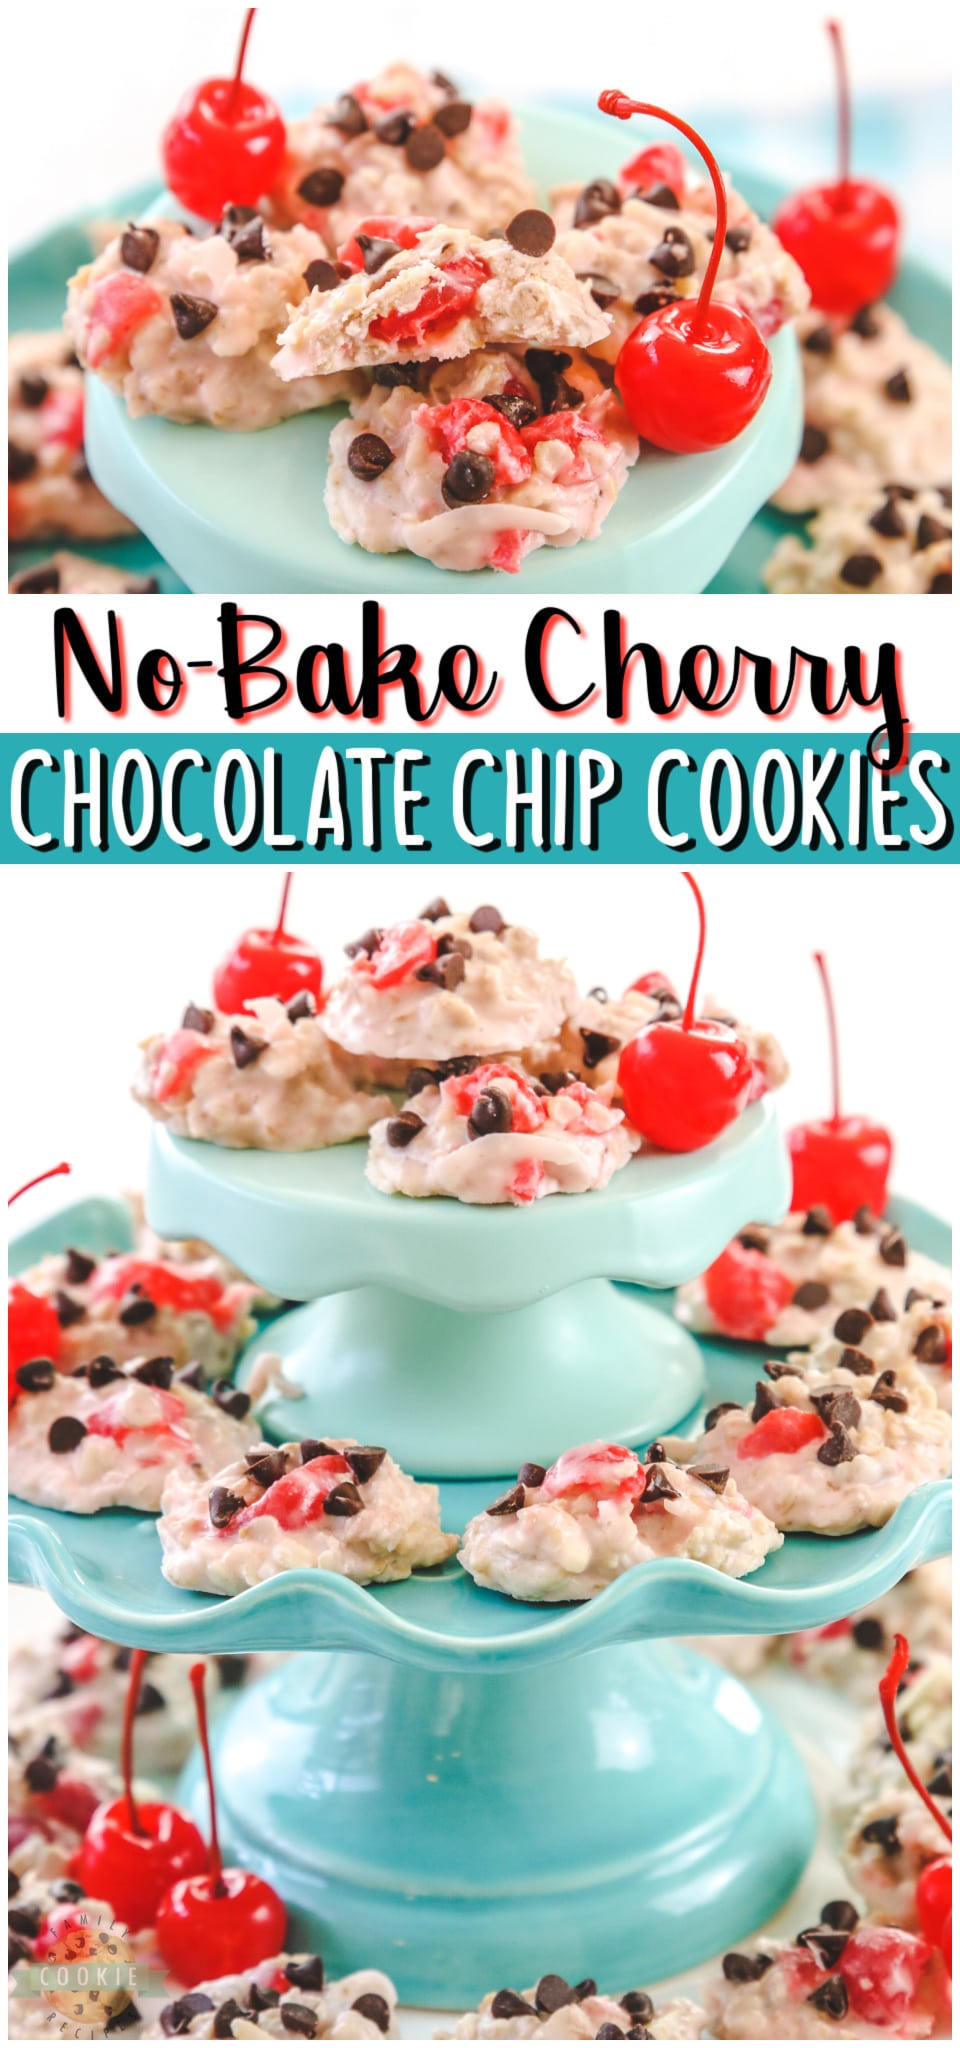 Cherry Chocolate Chip No Bake Cookies are fruity, festive & so simple to make! Incredibly cherry almond vanilla flavor in these easy no-bake cookie recipe.